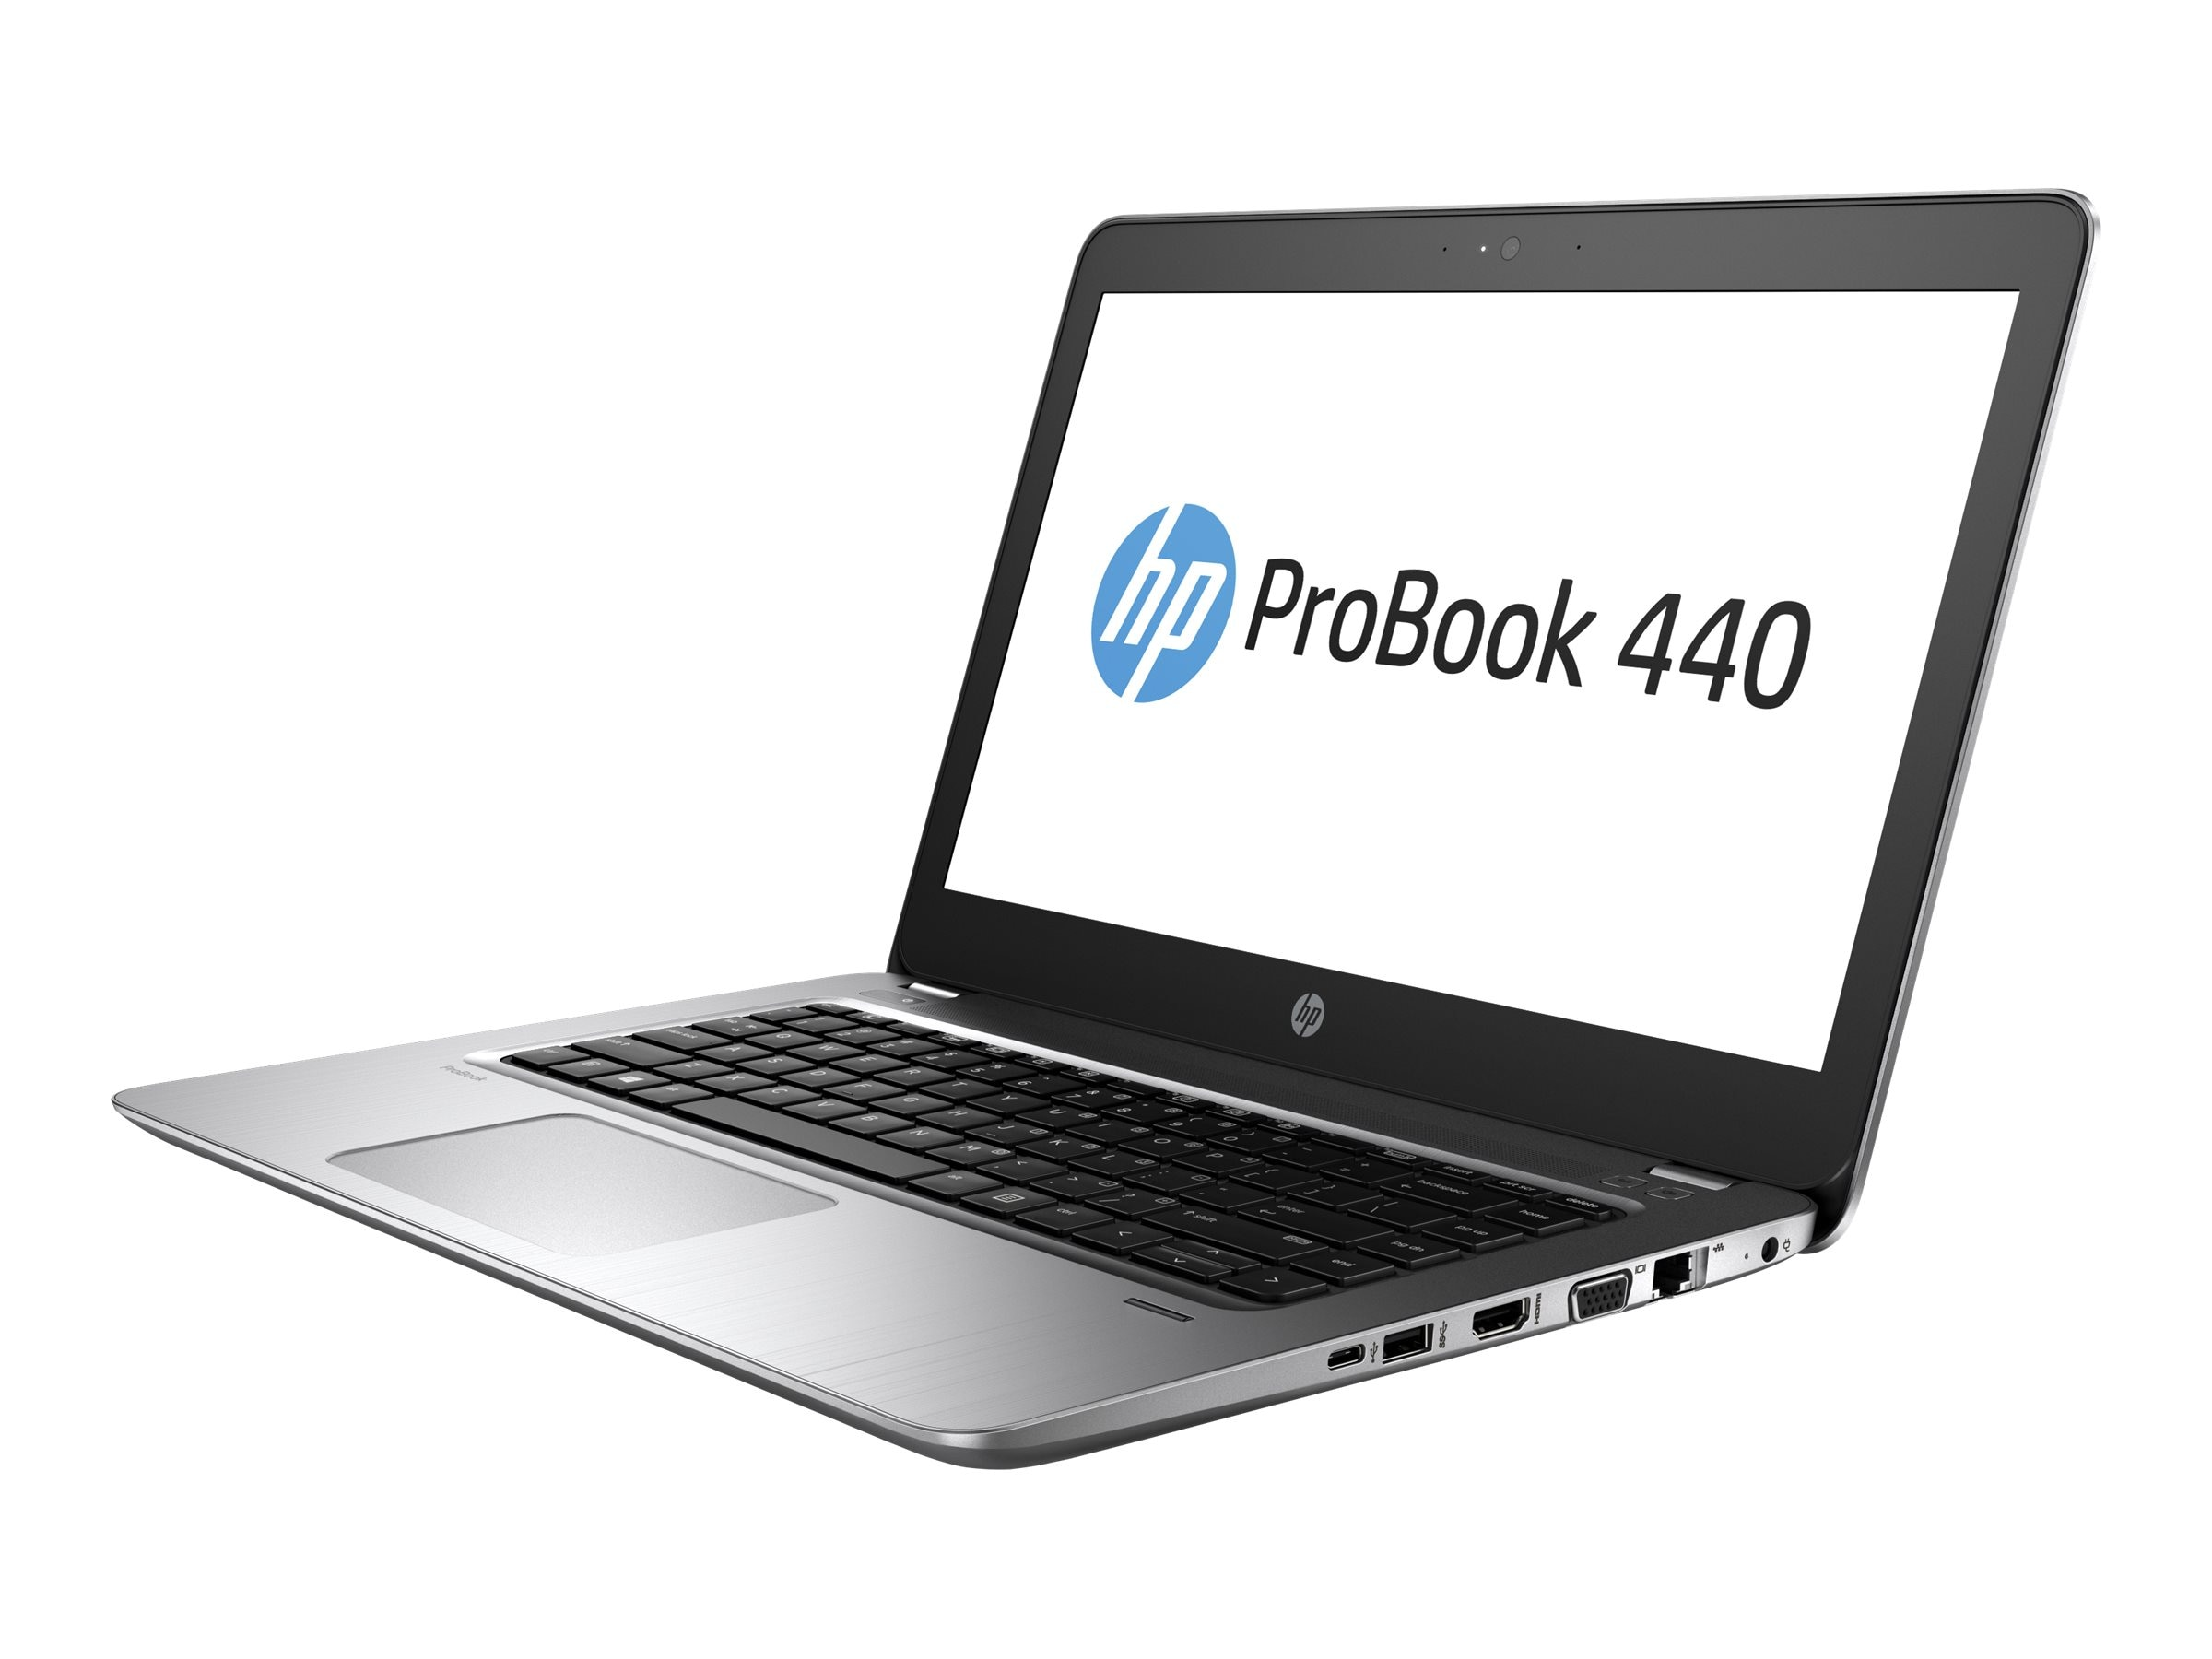 HP ProBook 440 G4 2.4GHz Core i3 14in display, Z1Z80UT#ABA